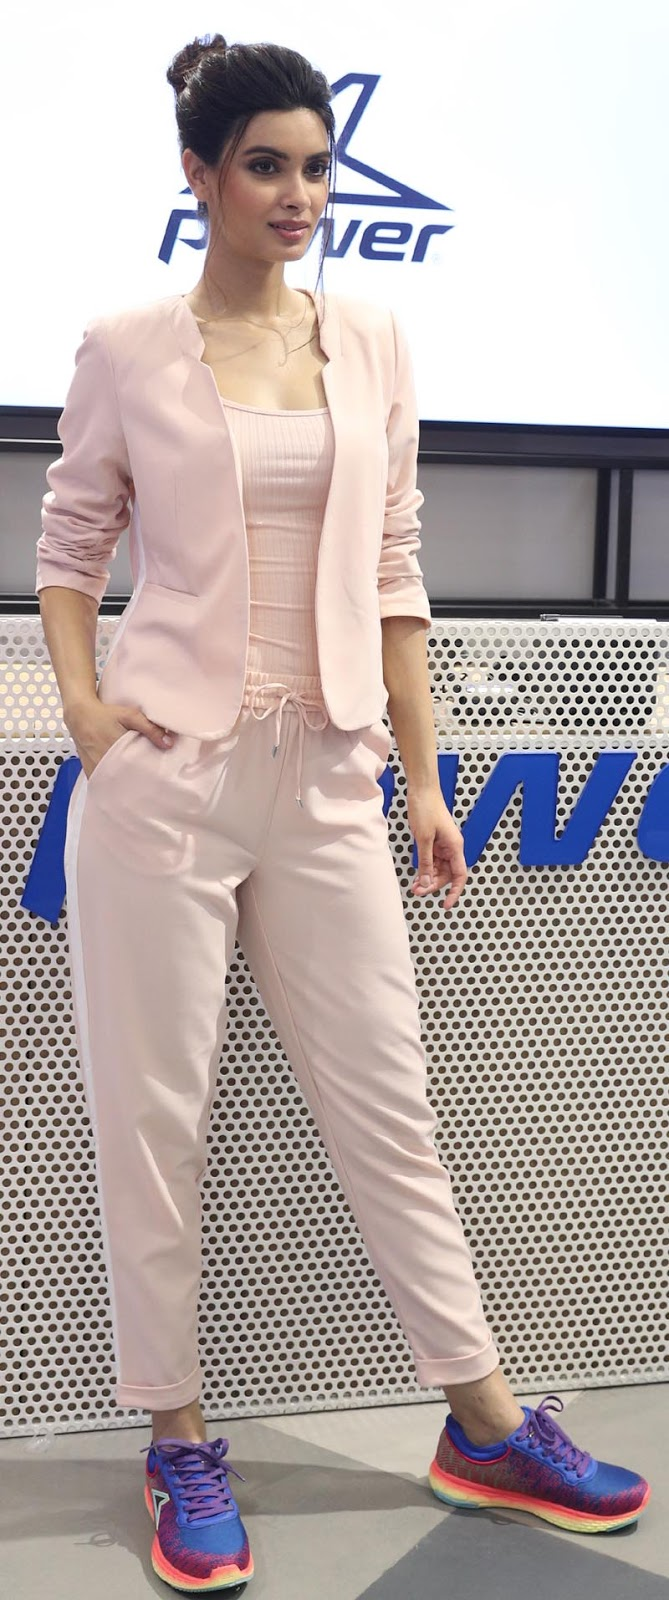 Diana Penty shows sports Power Shoes at the World's first exclusive Power store launch